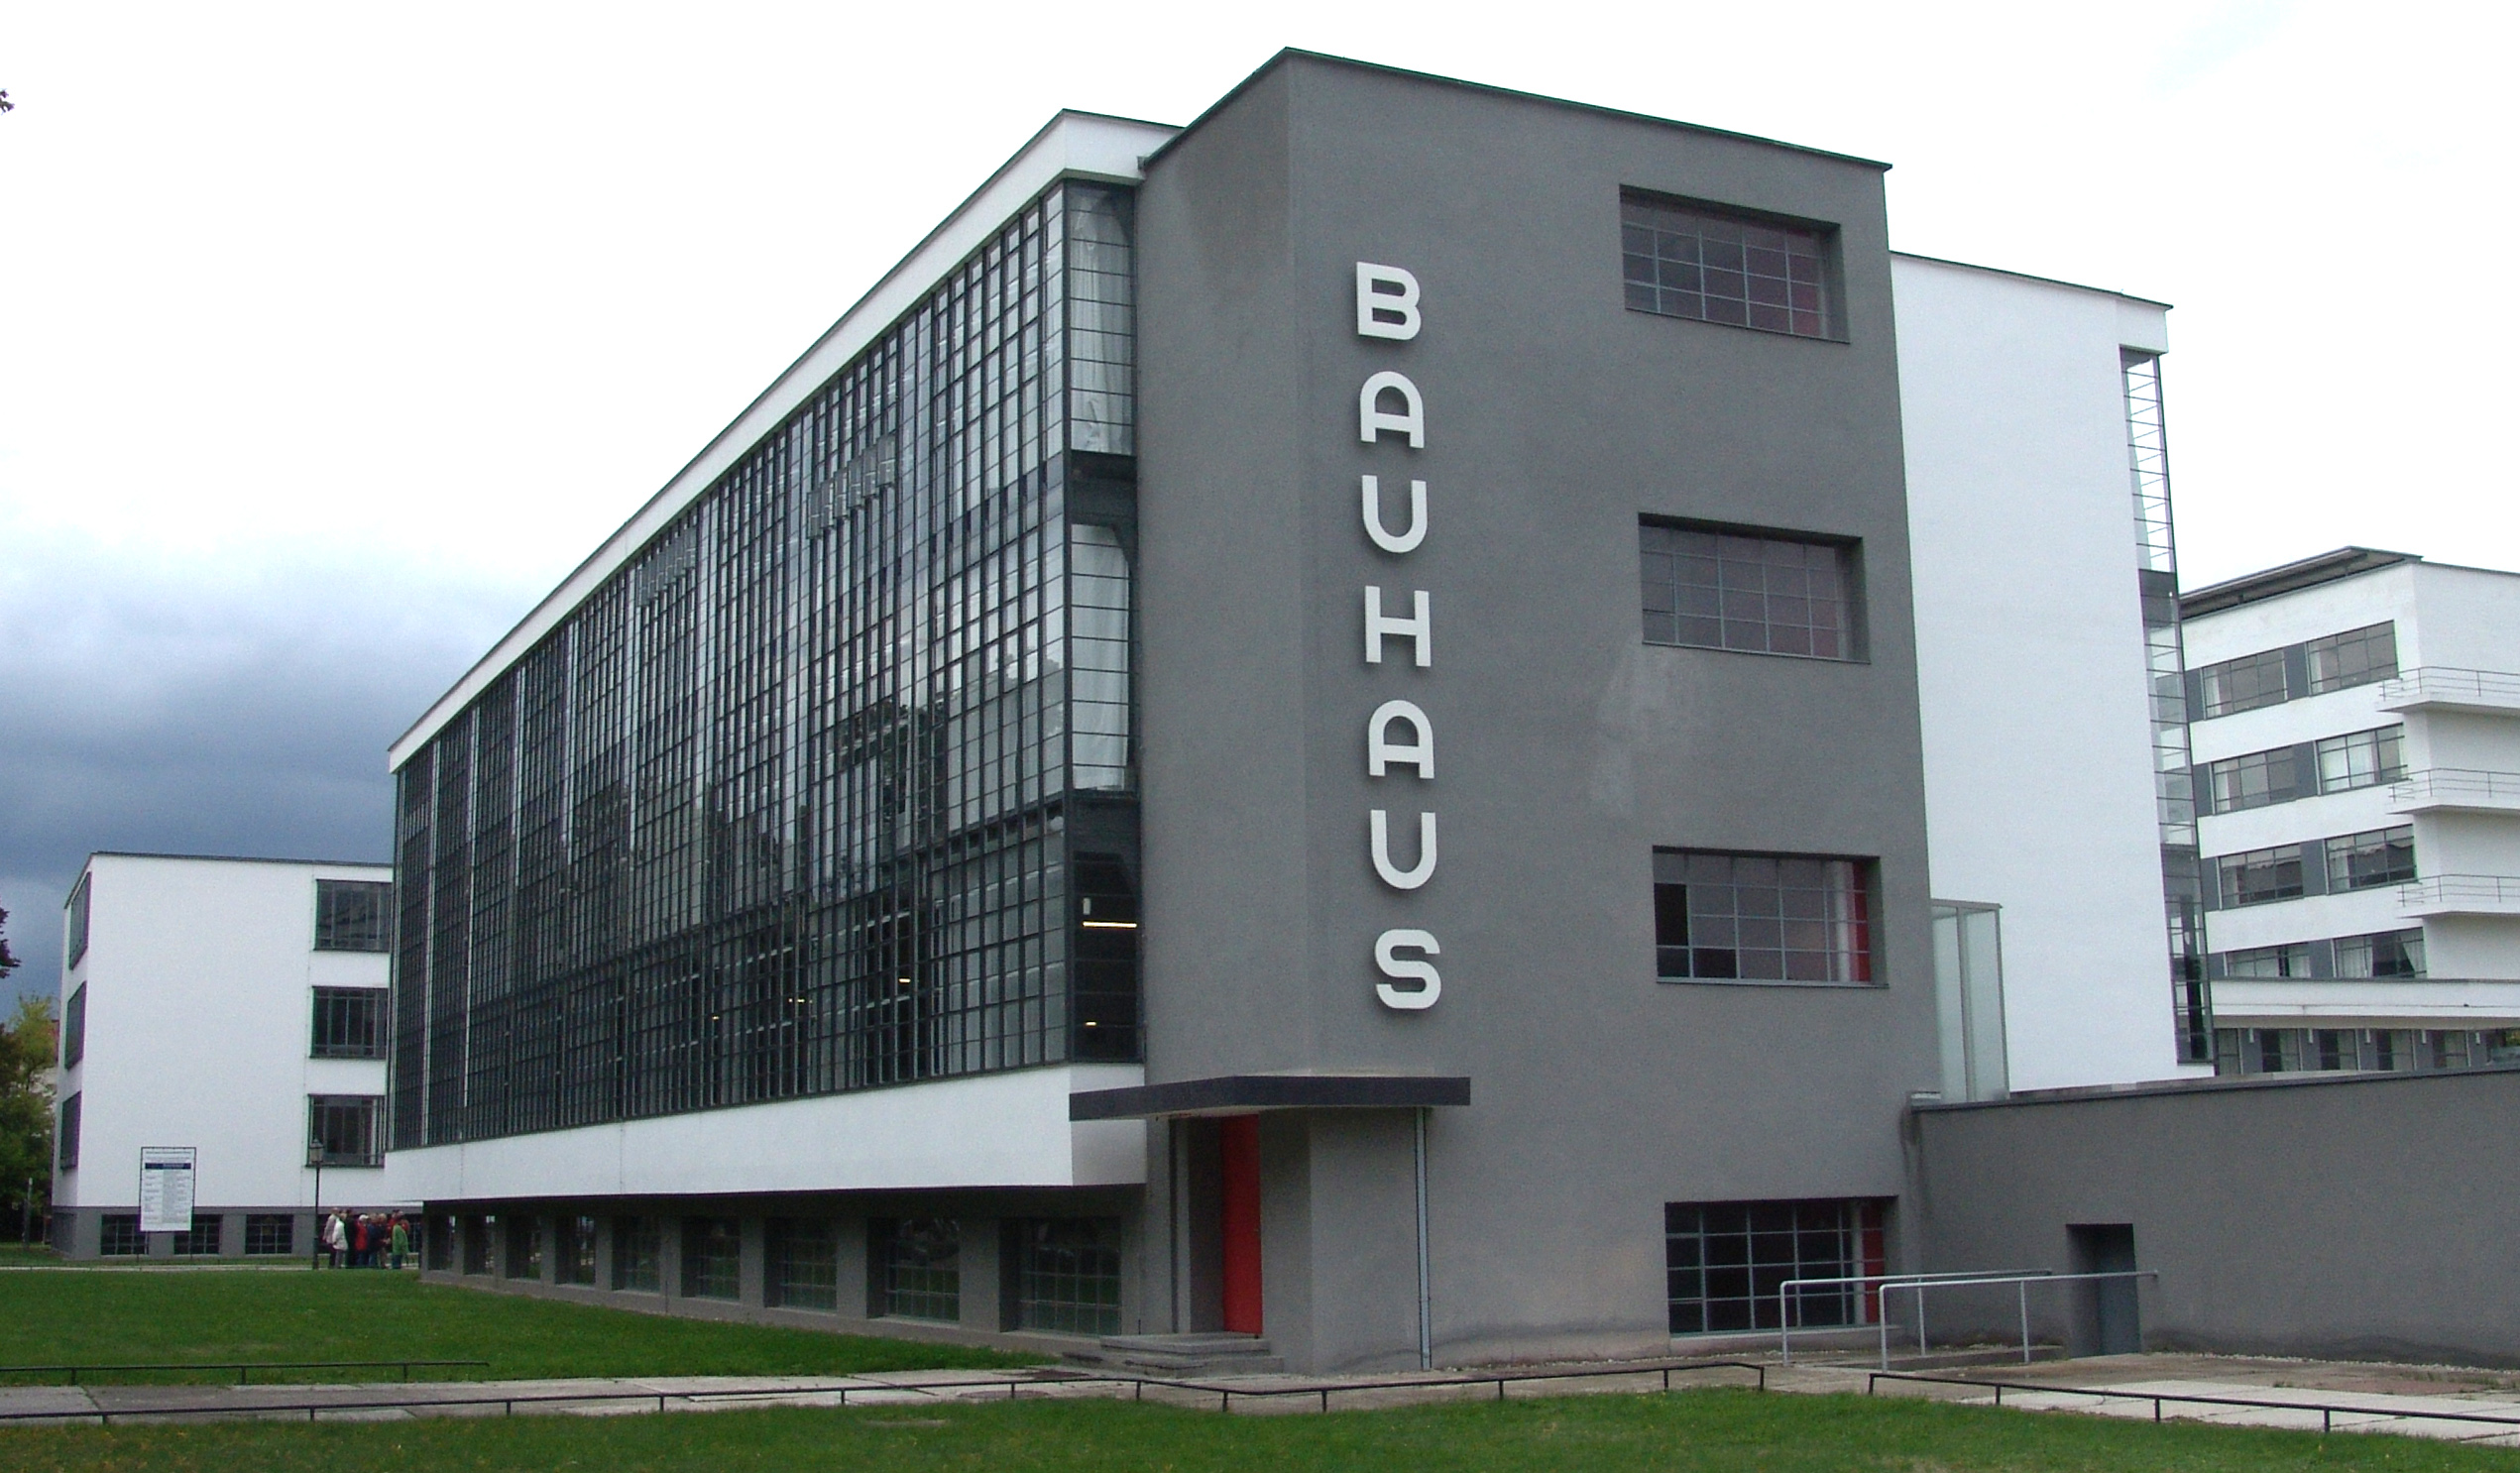 The Bauhaus, Dessau, Germany, designed by Walter Gropius (1925-26)